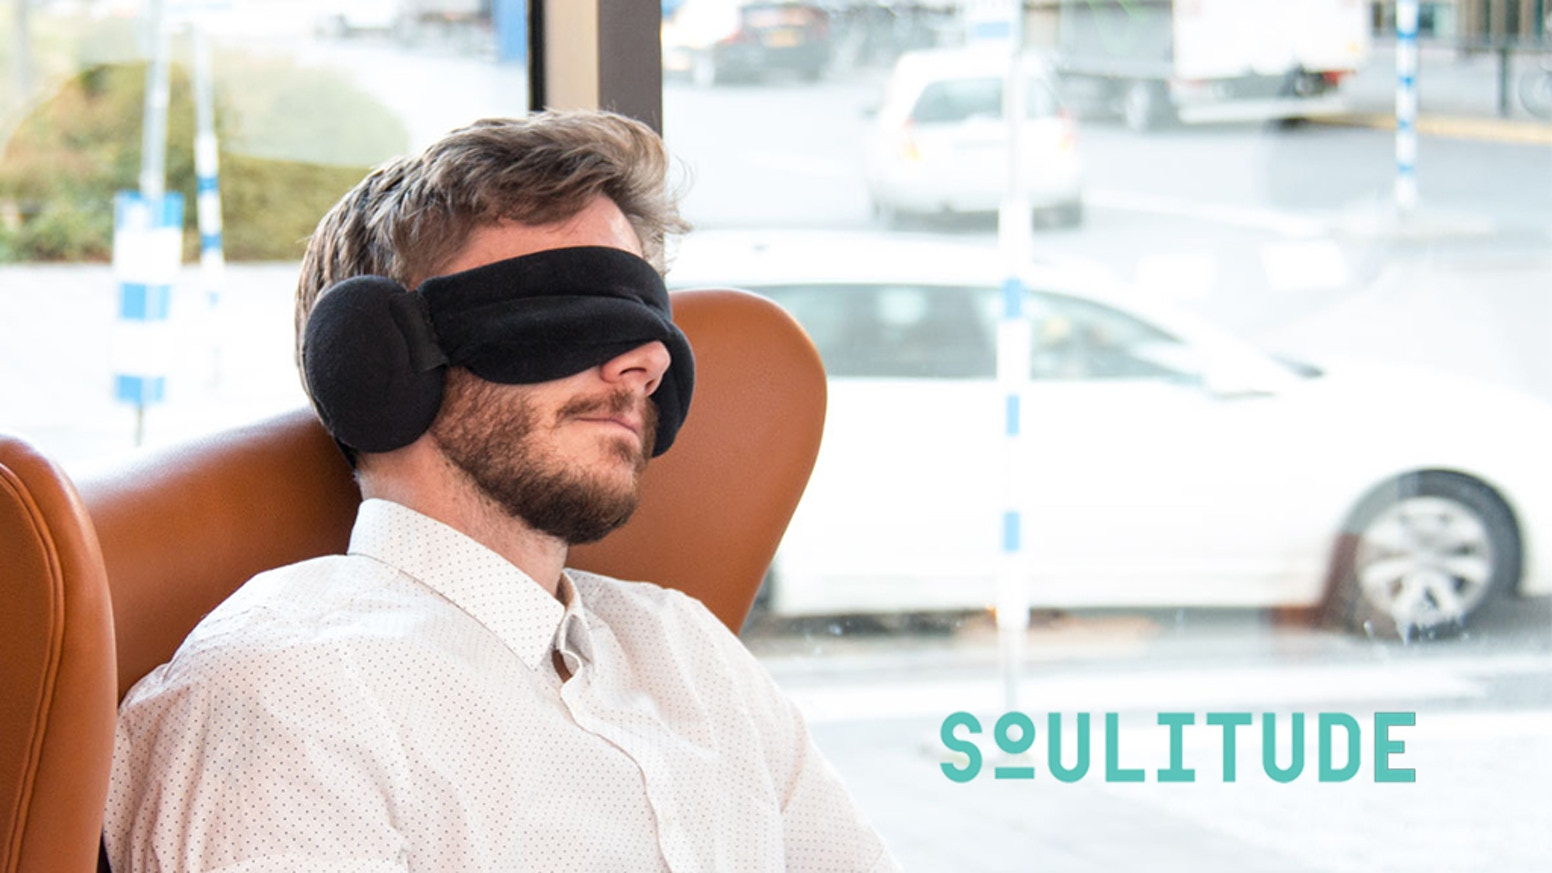 Soulitude: Goodbye to Unwanted Light and Disturbing Noise  by Odd